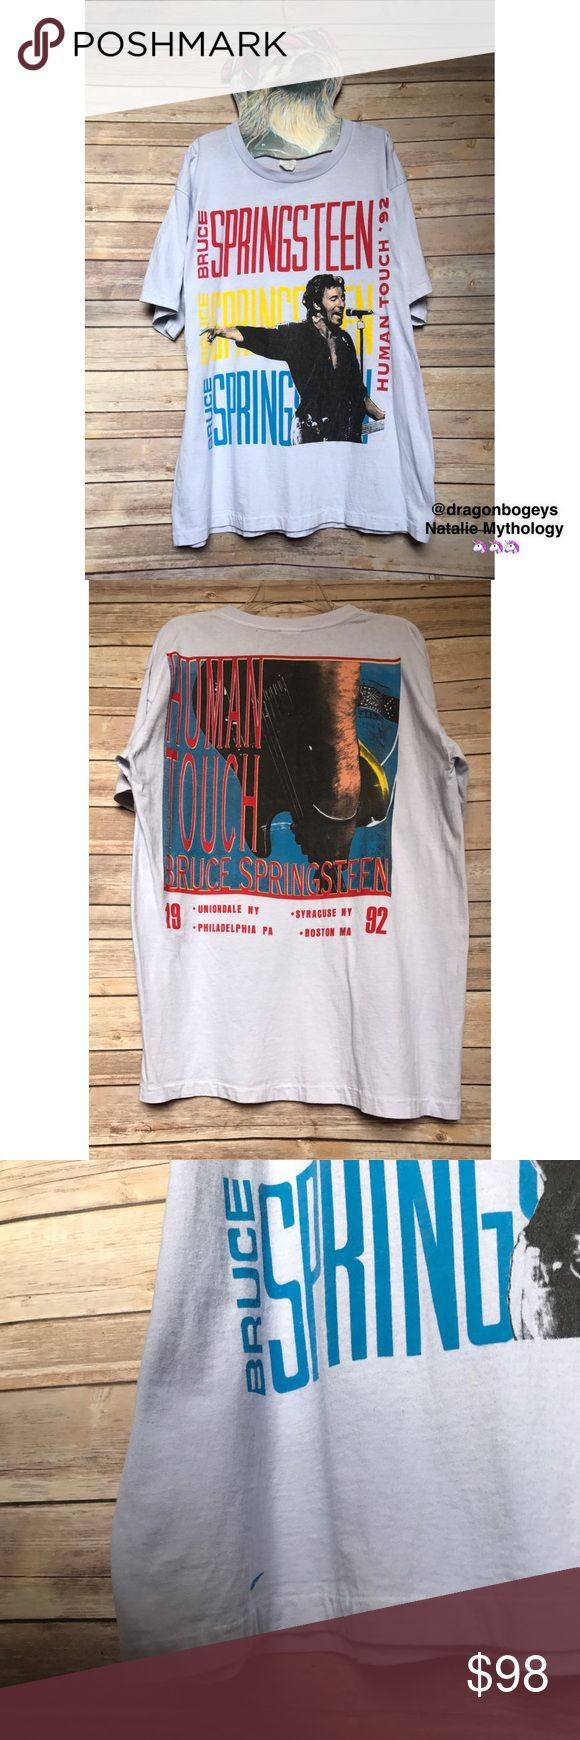 Vintage Bruce Springsteen Tour Tee Vintage tour shirt purchased in Philadelphia at the Bruce Springsteen 1992 Human Touch tour. This tee has four tour dates on the back - Uniondale, NY • Syracuse, NY • Philadelphia, PA • Boston, MA. Shirt is faded and weathered, but still in great shape considering its age. Would be perfect for a DIY project as a festival shirt. This shirt is hard to find, don't let it slip away! Be one with The Boss 👍🏻 Vintage Shirts Tees - Short Sleeve